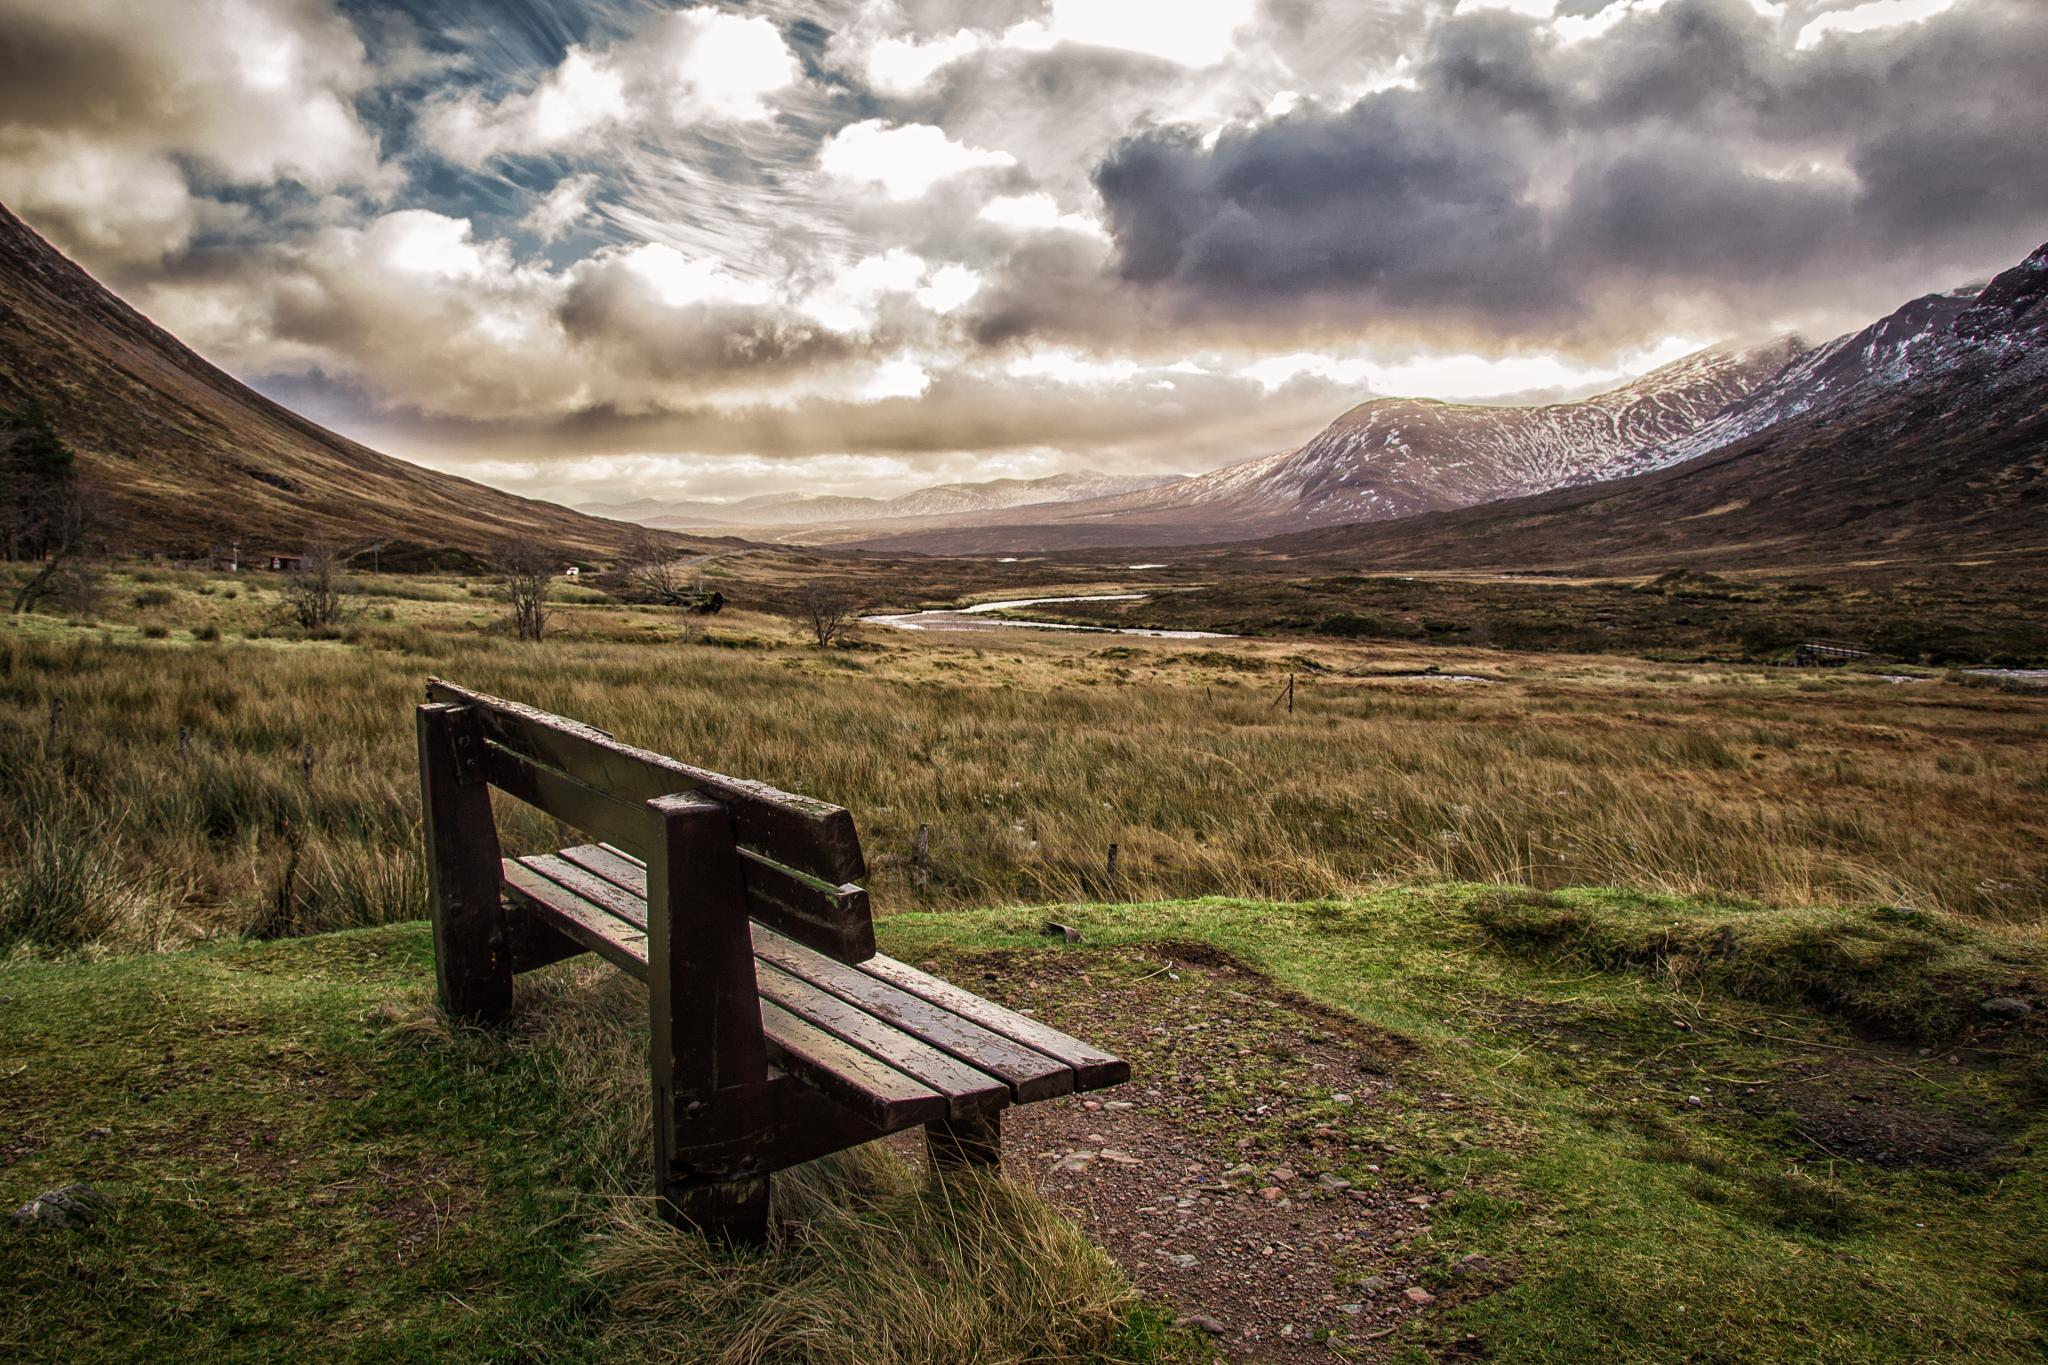 Heavens seat by Lindaprime